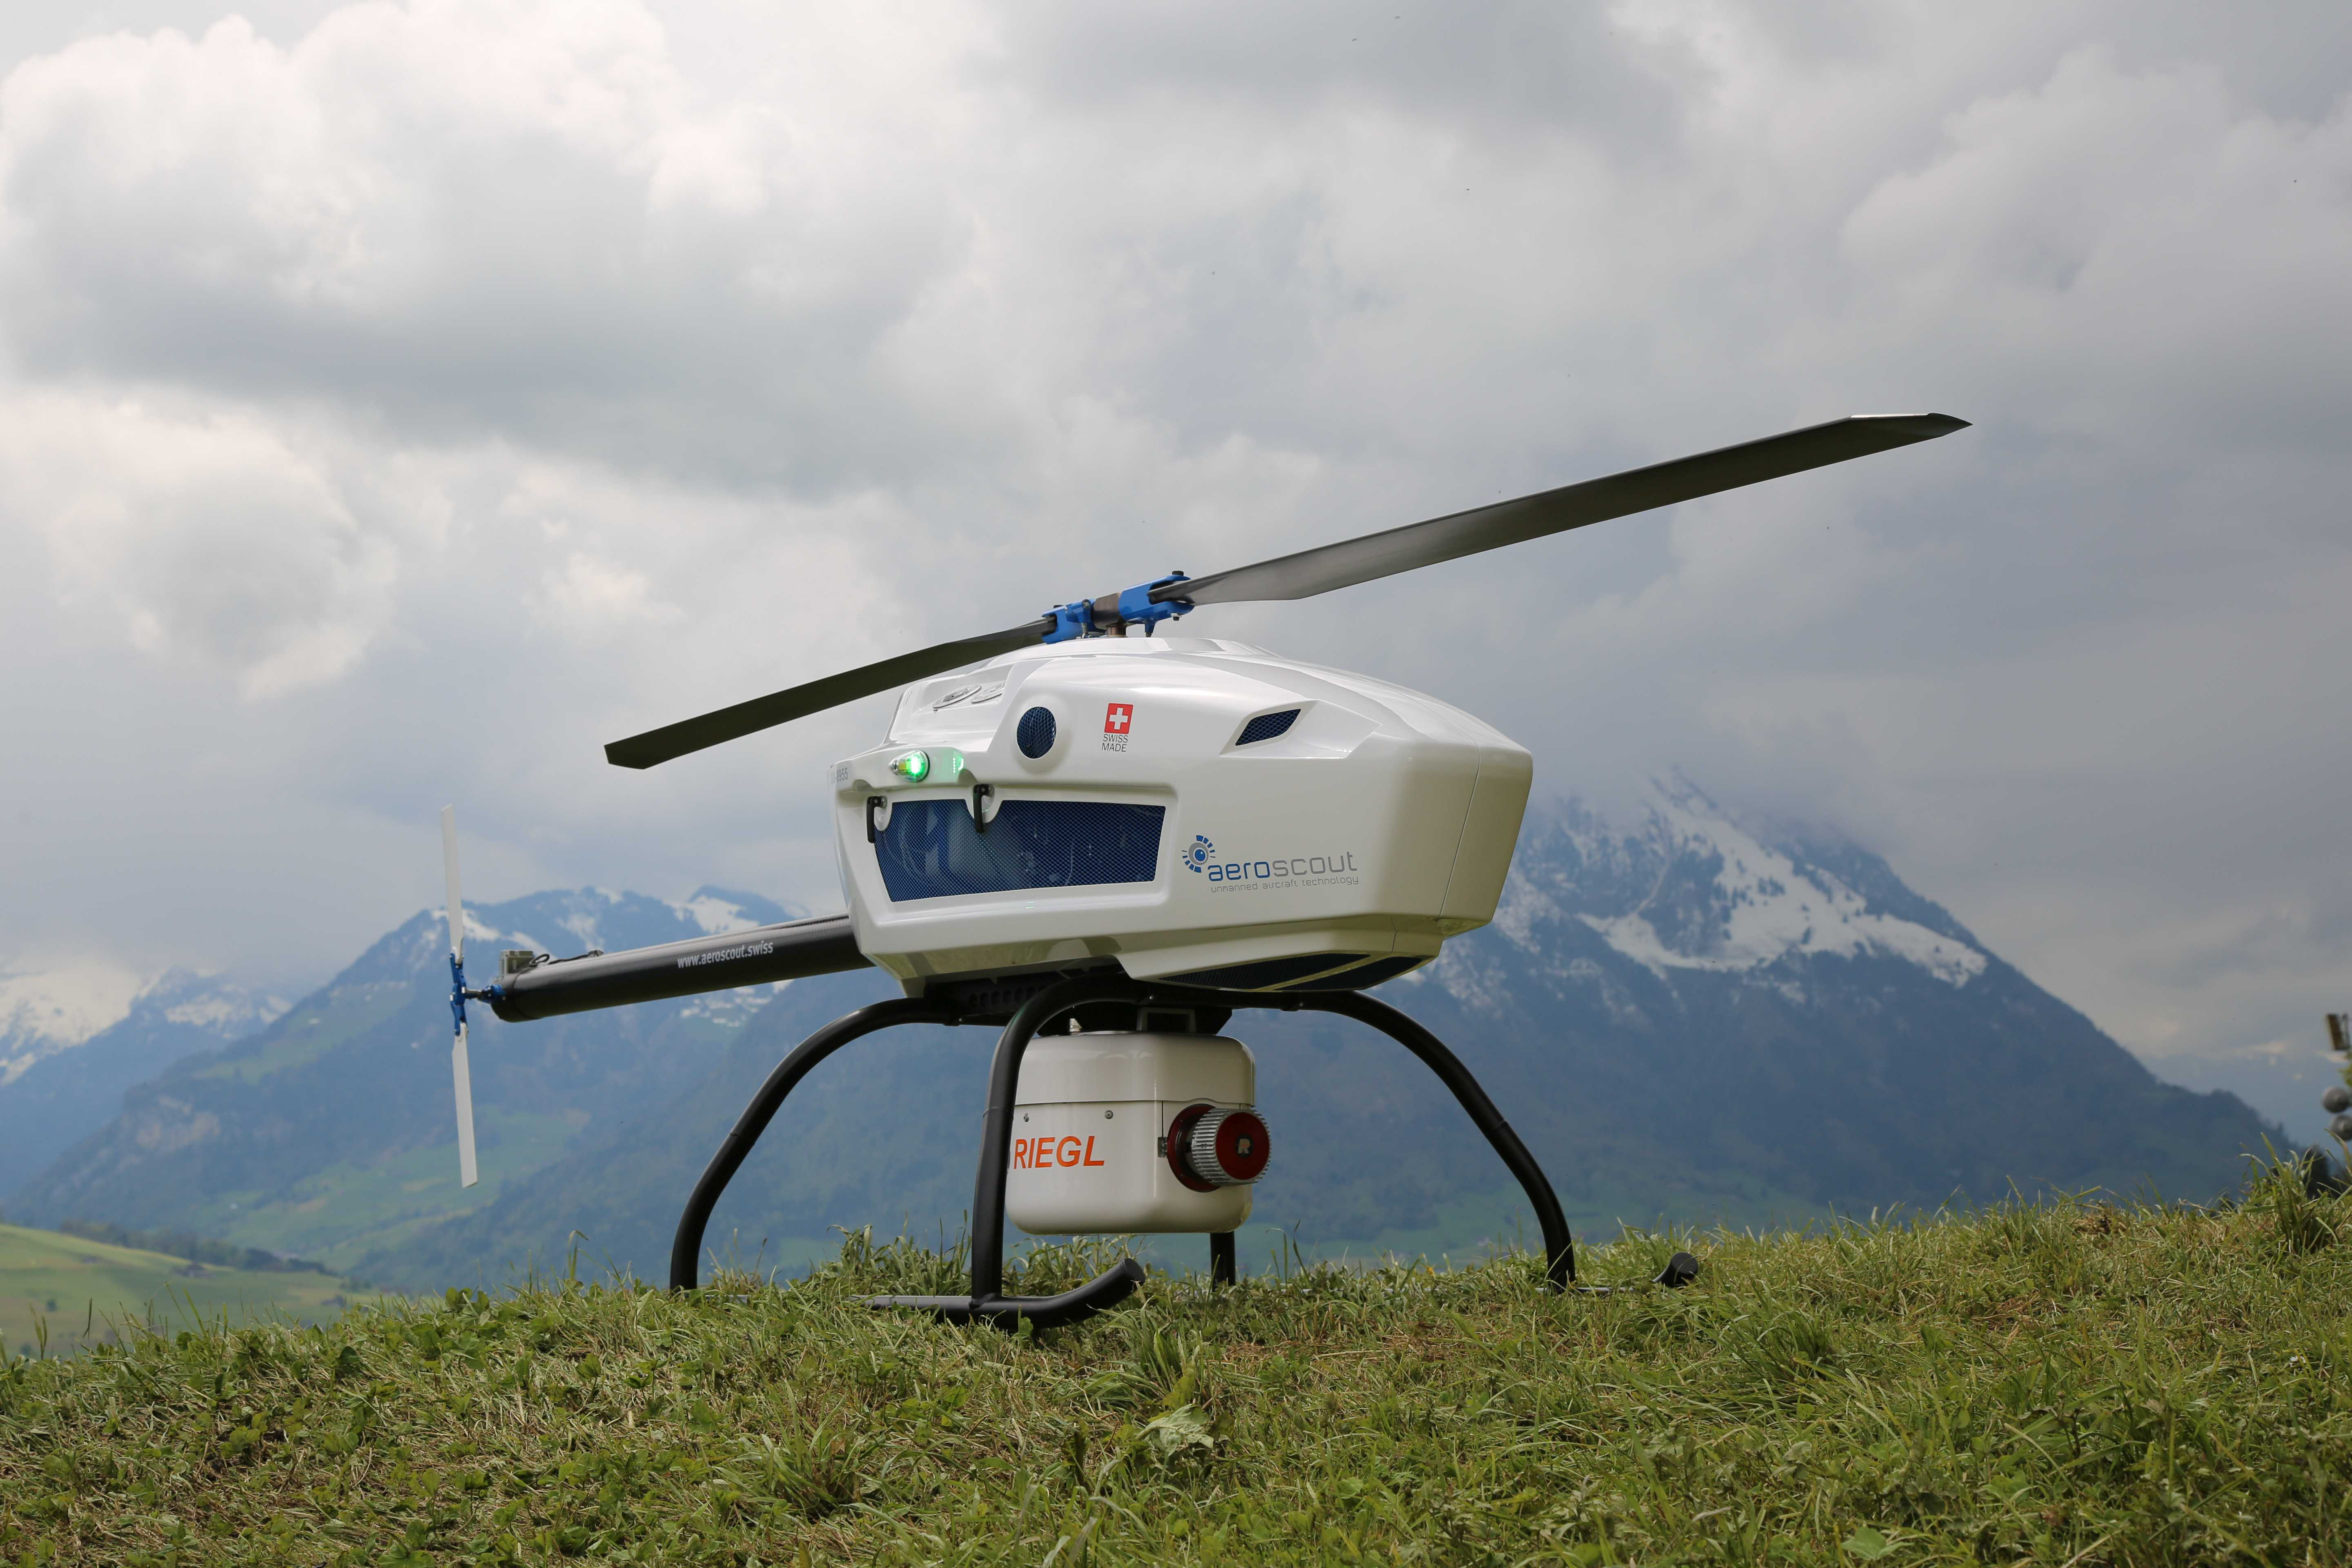 Swiss Based Uav Pioneer Aeroscout Introduced Their New